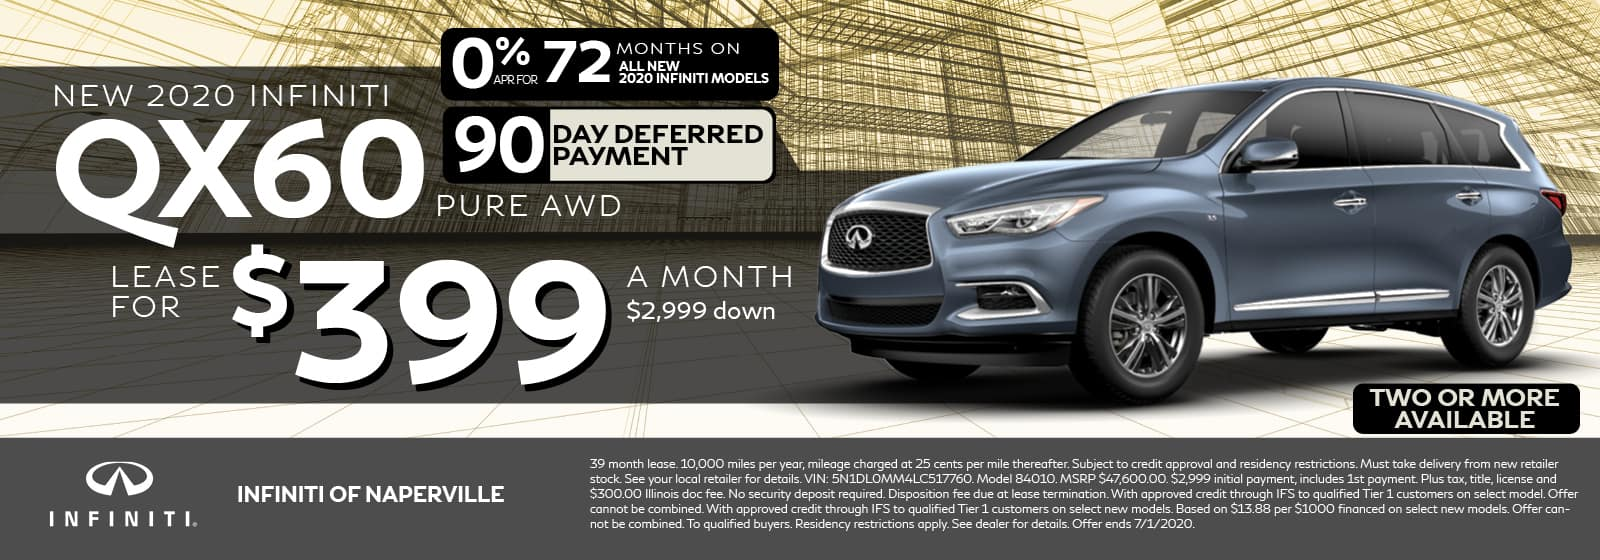 QX60 Lease Offer